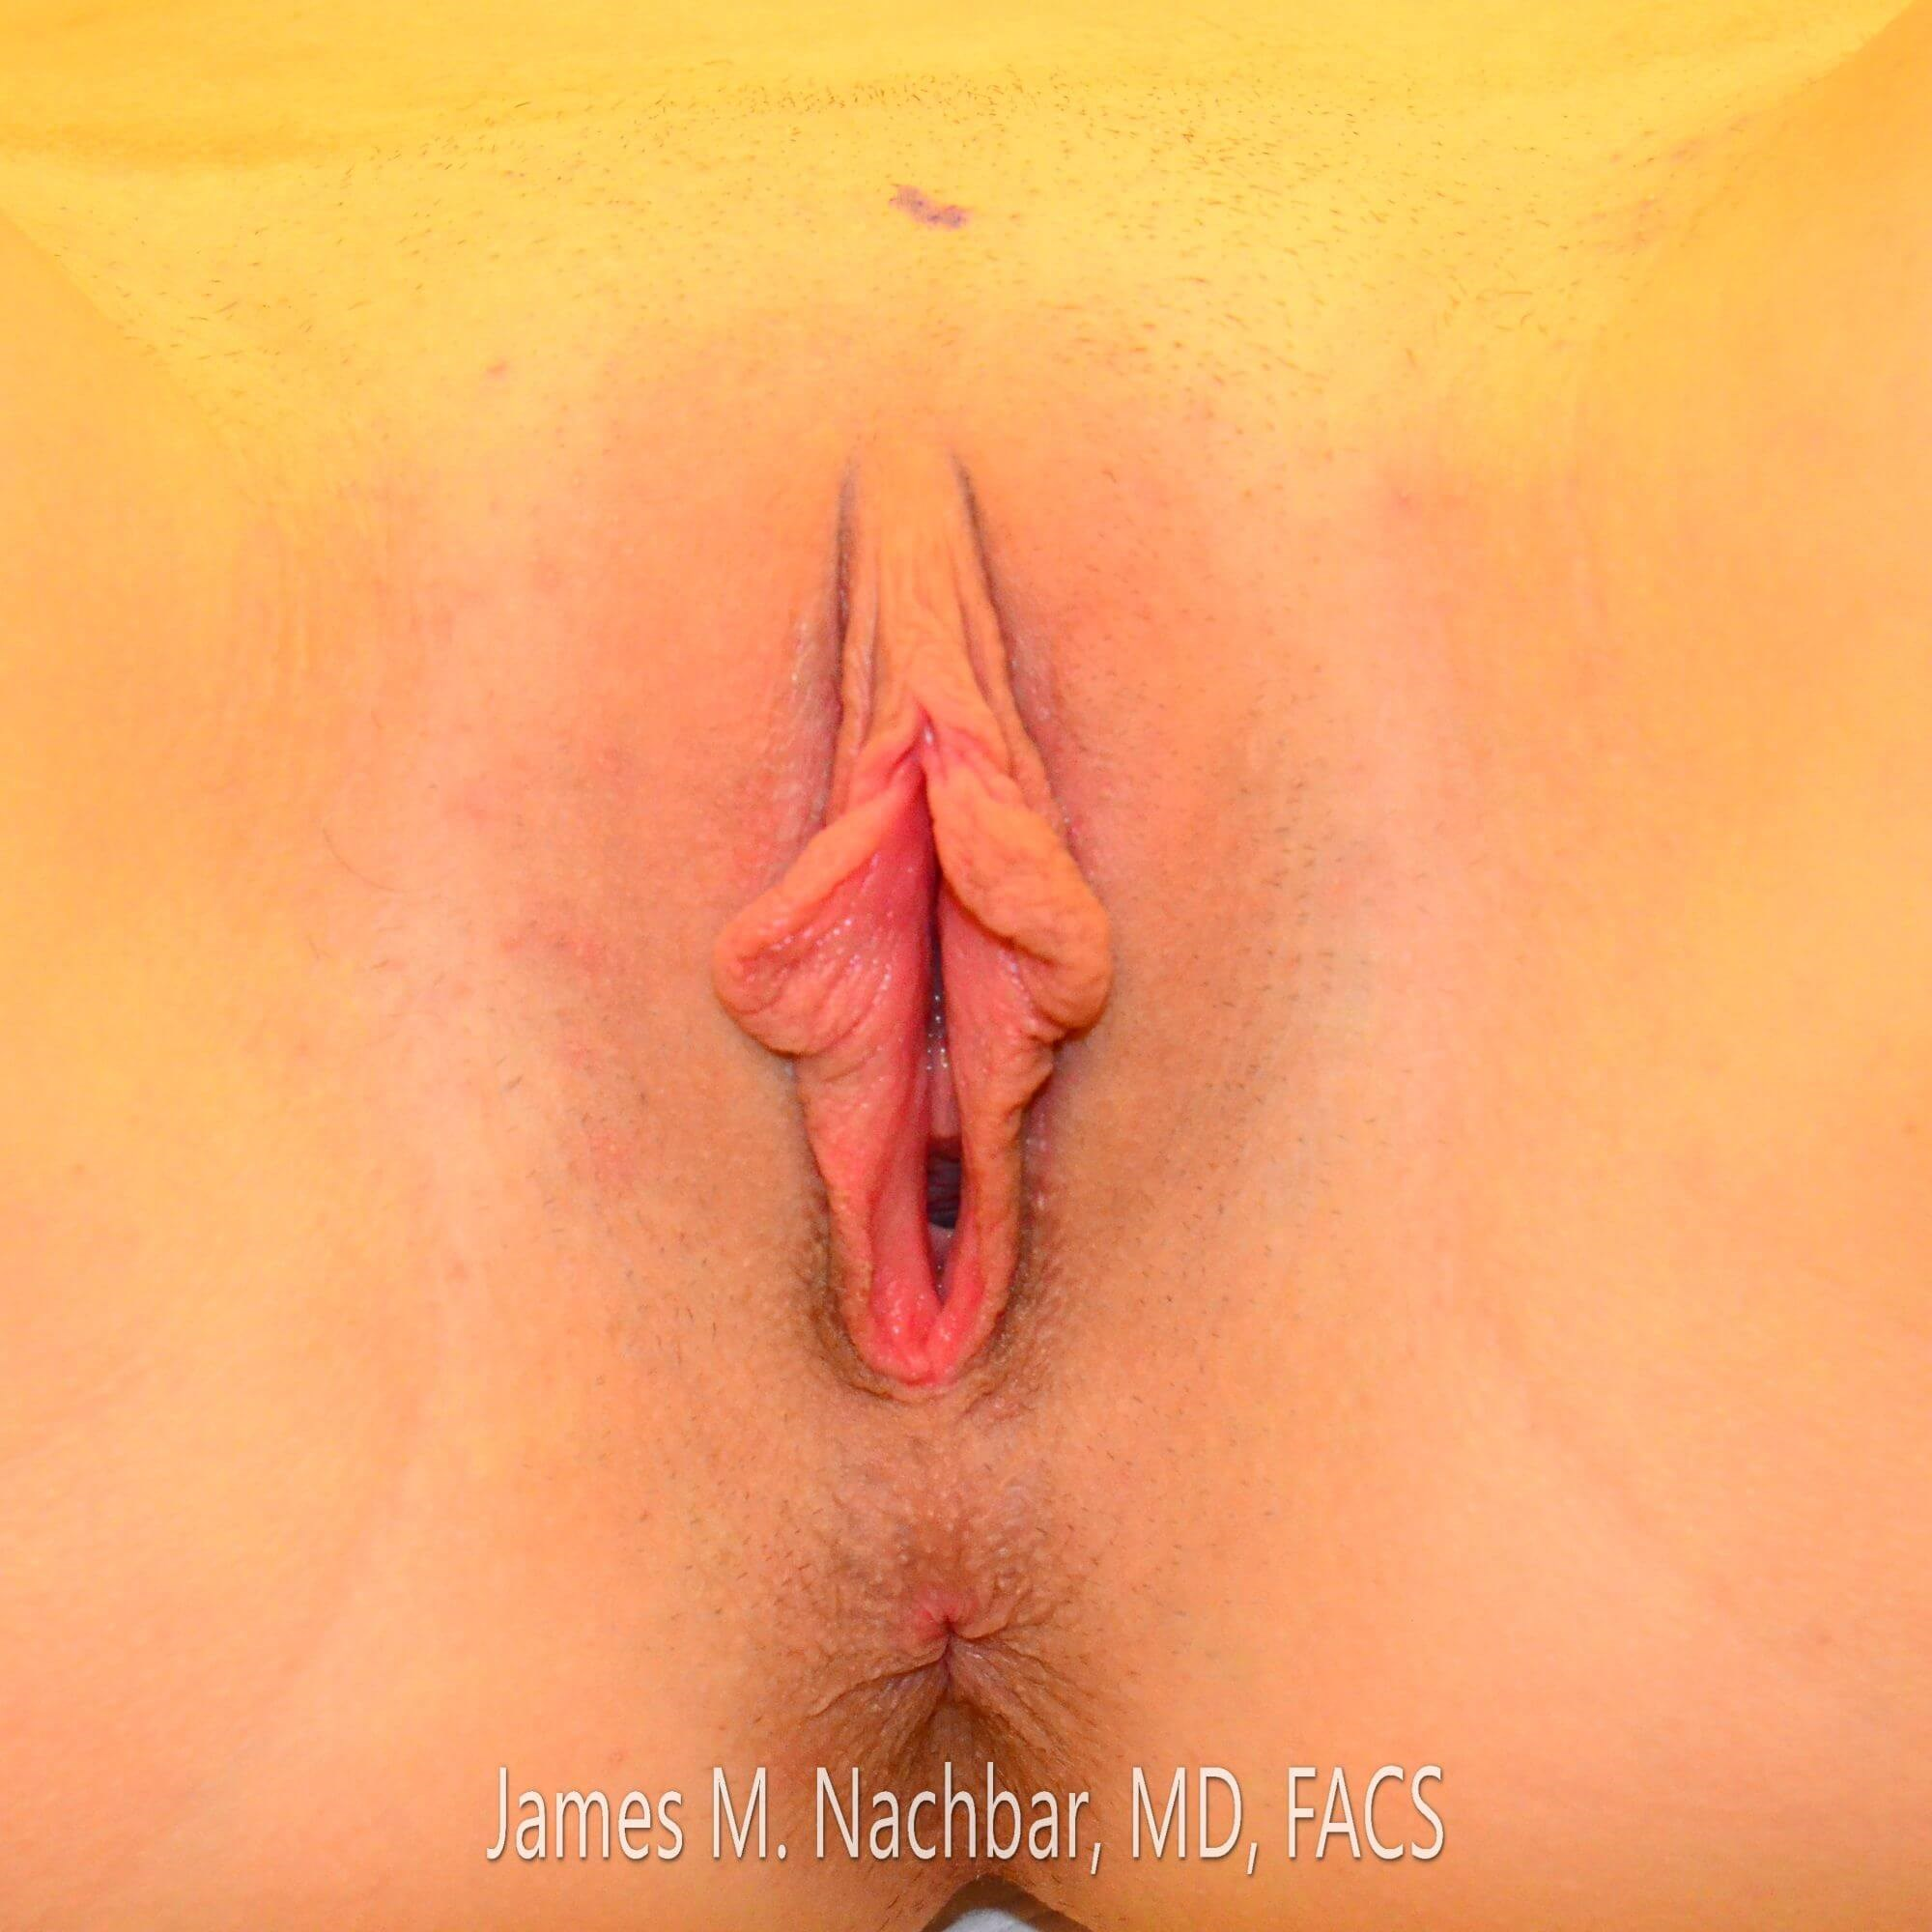 Wedge Labiaplasty, Direct View Before